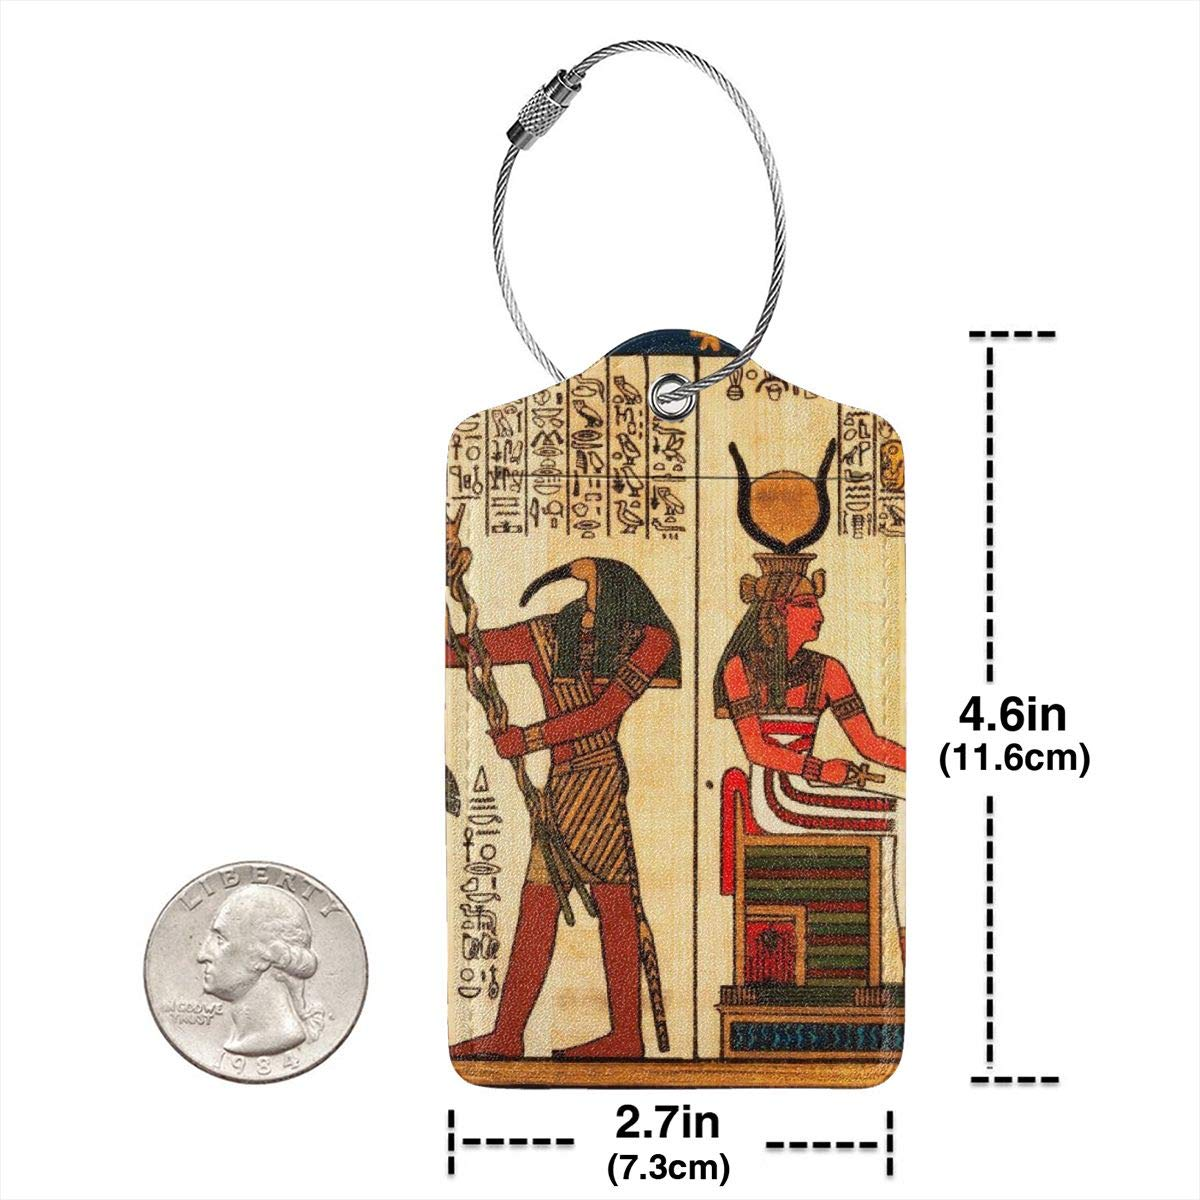 Ancient Egyptian Pharaoh Hieroglyphics Vintage Mural Egypt Luggage Tag Label Travel Bag Label With Privacy Cover Luggage Tag Leather Personalized Suitcase Tag Travel Accessories